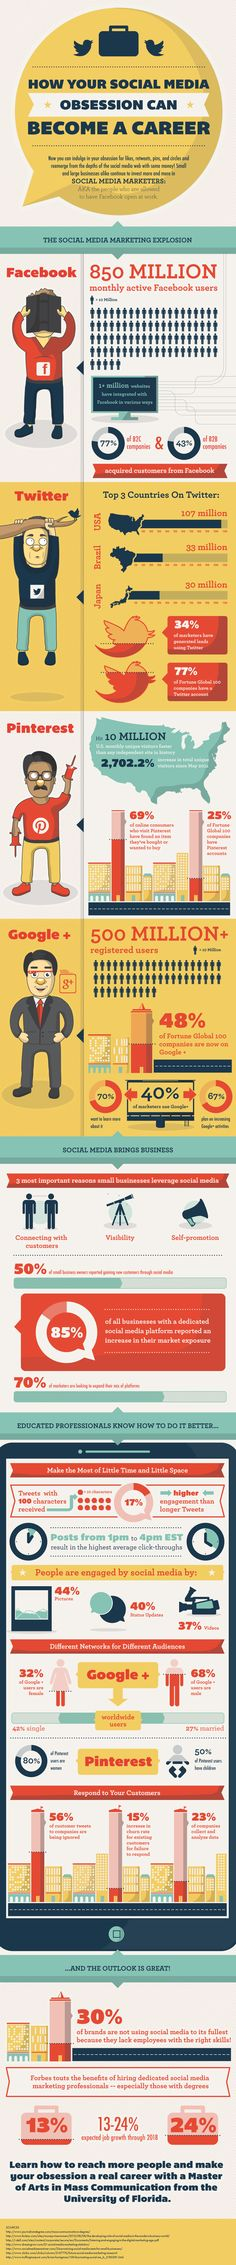 Infographic: 30% of businesses lack social media skills